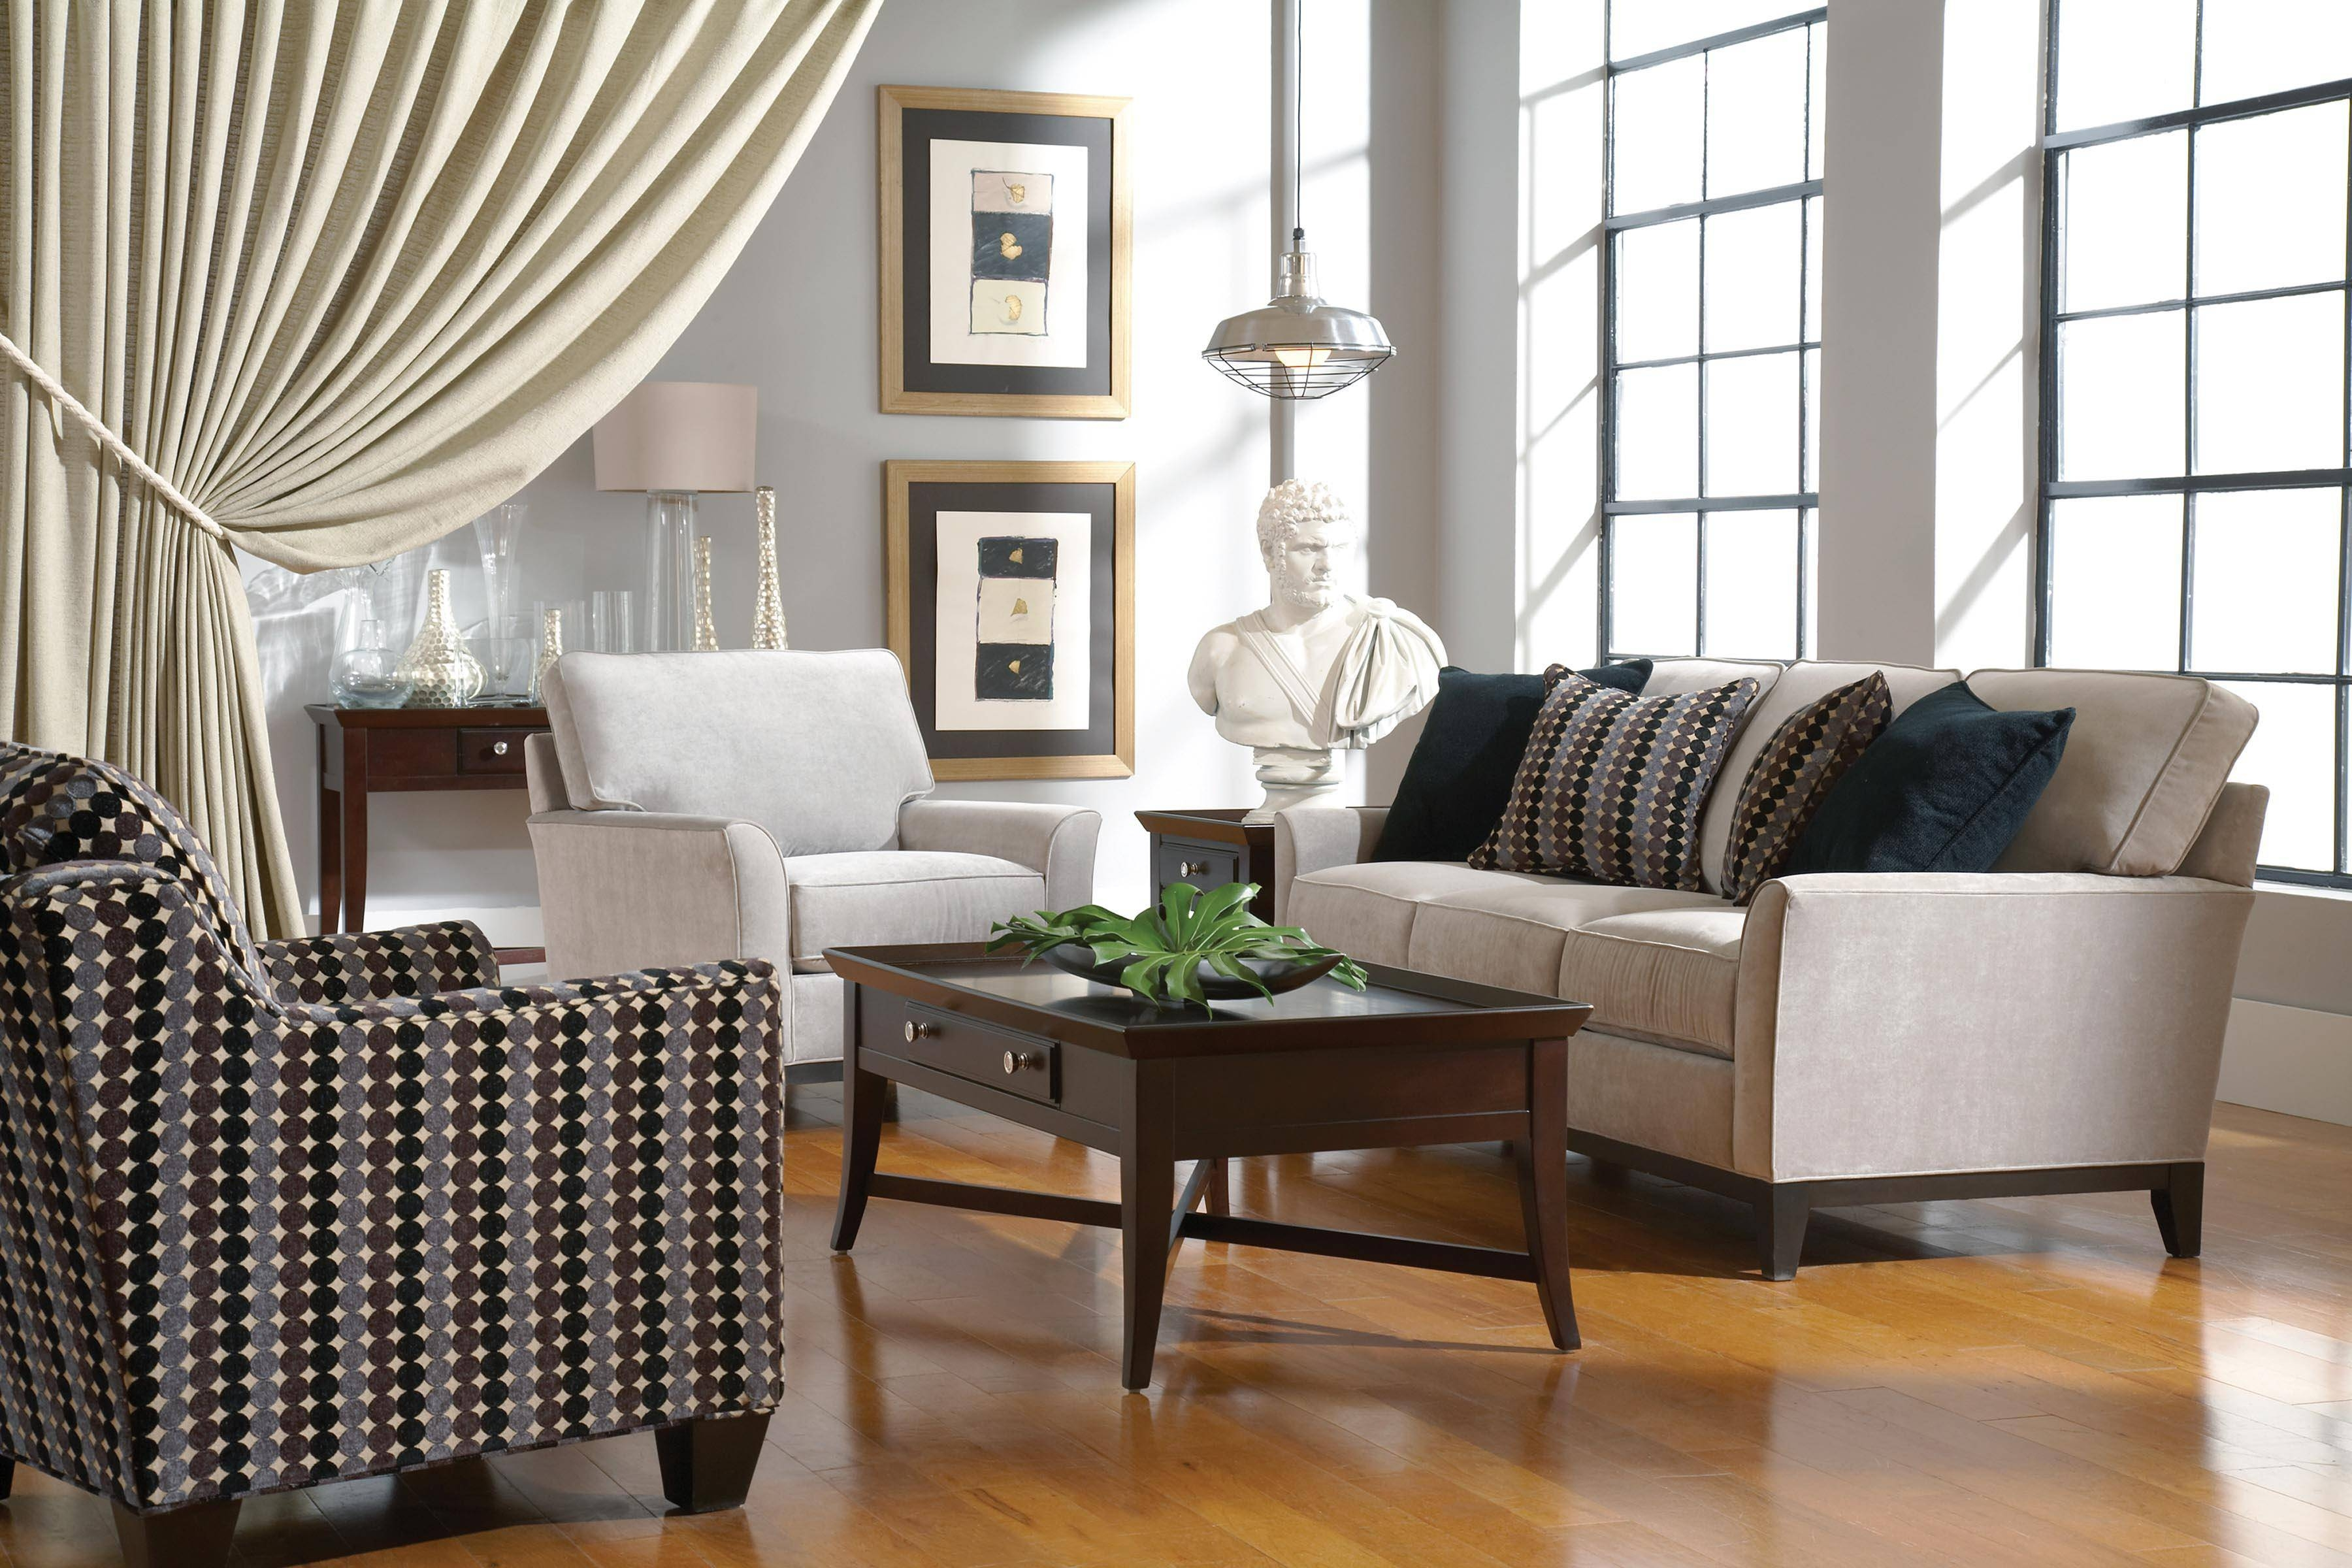 Furniture: Stunning Broyhill Sofas For Enchanting Living Room inside Broyhill Perspectives Sofas (Image 9 of 15)